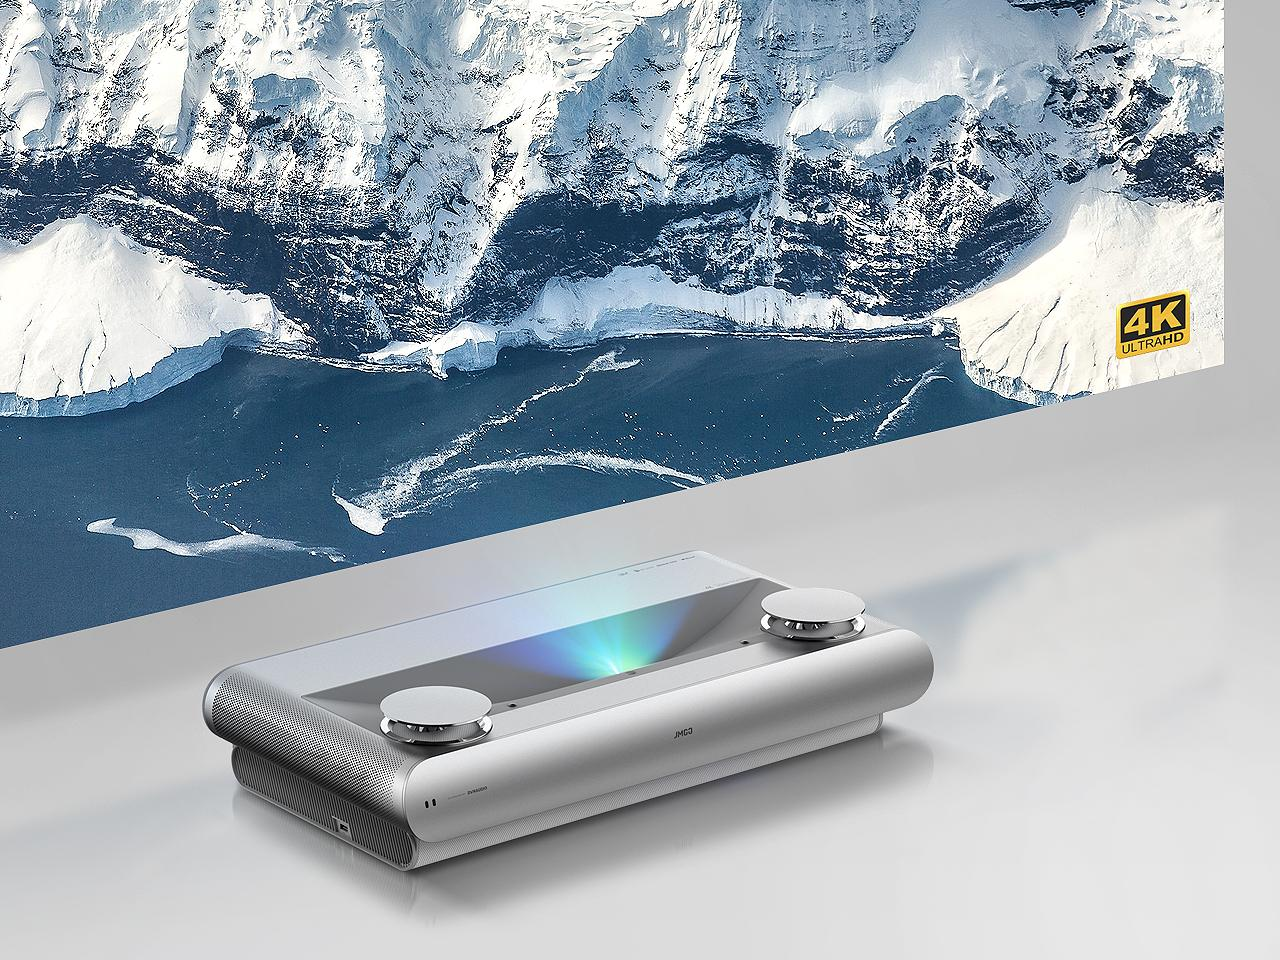 The JMGO U2 ultra-short-throw laser projector is capable of 4K UHD resolution with support for the BT.2020 color standard and HDR10